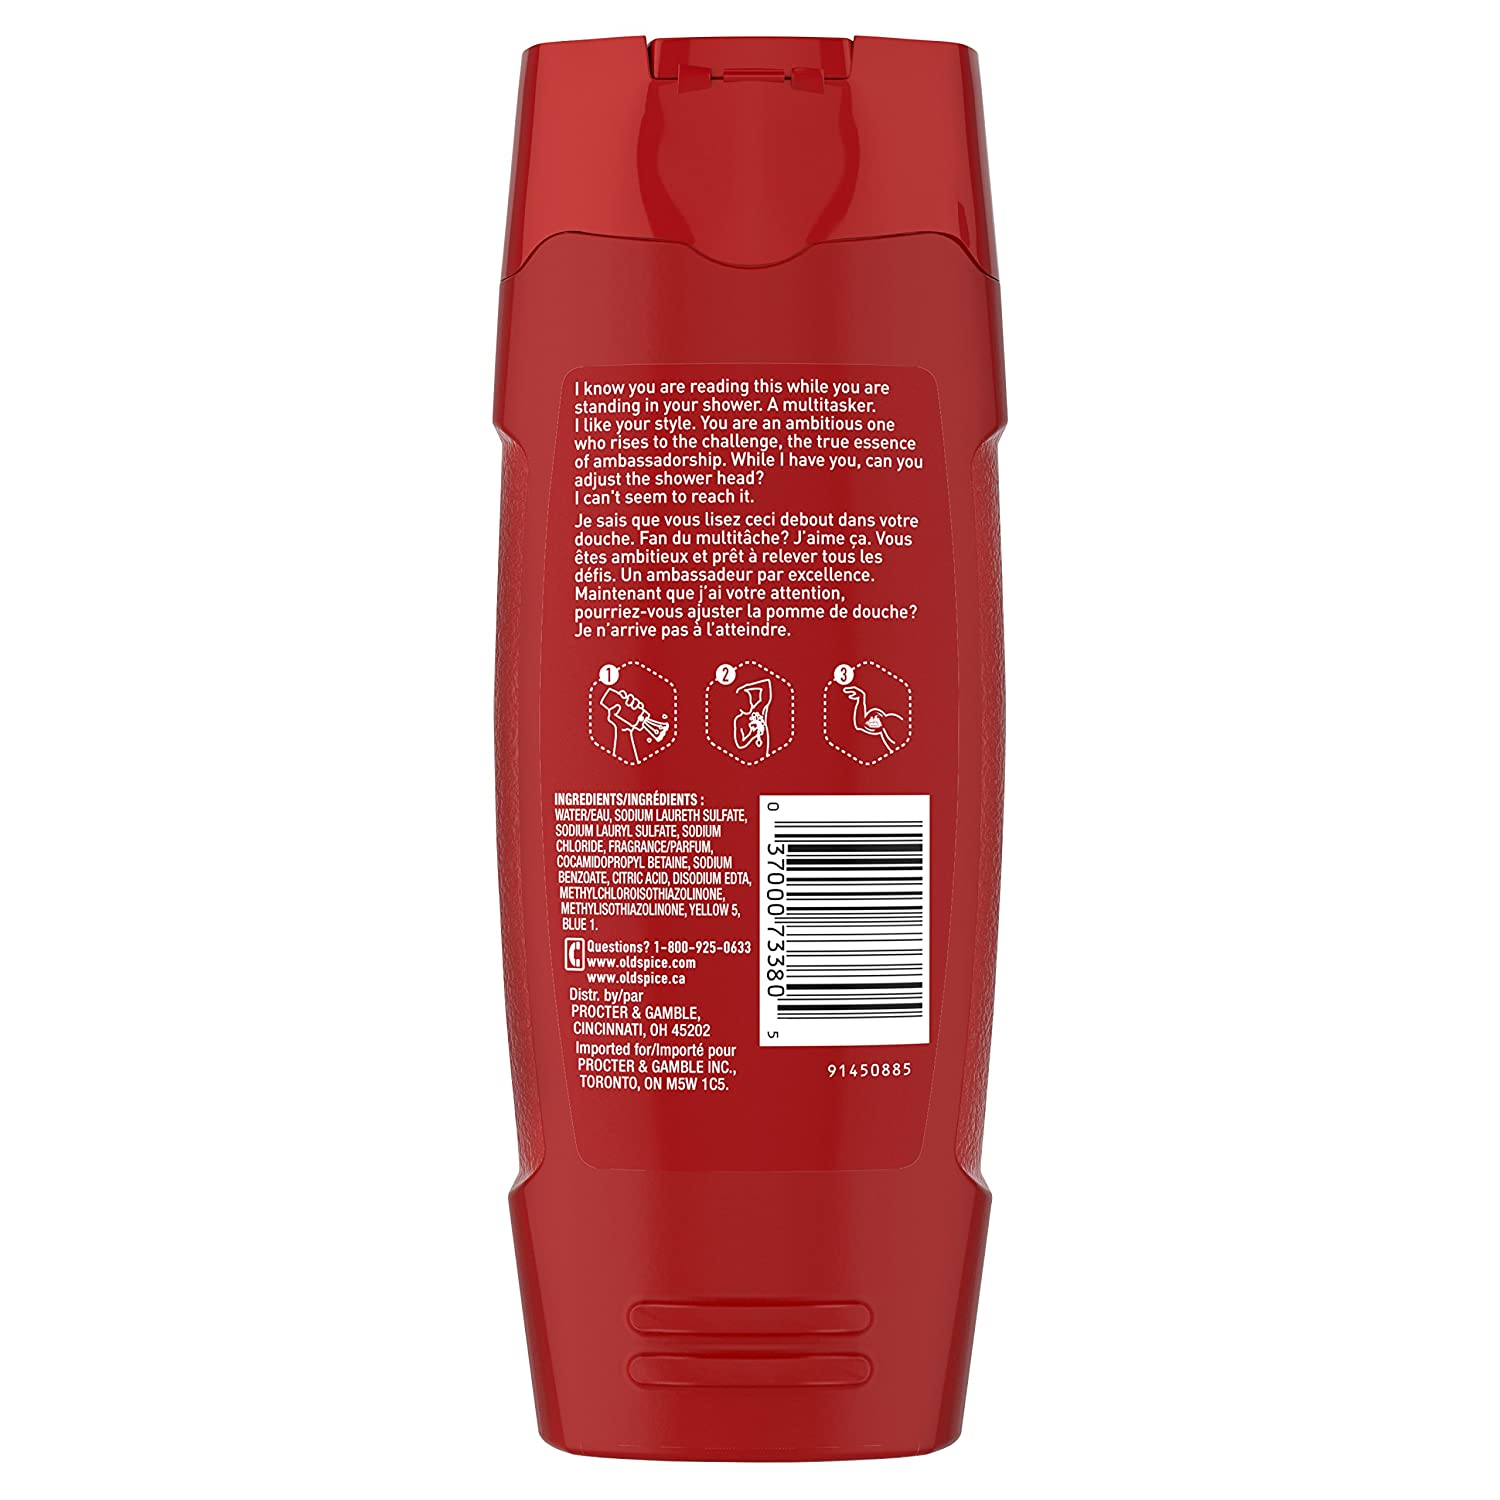 Old Spice Red Collection Ambassador Scent Body Wash for Men, 16.0 Fluid Ounce Pack of 6